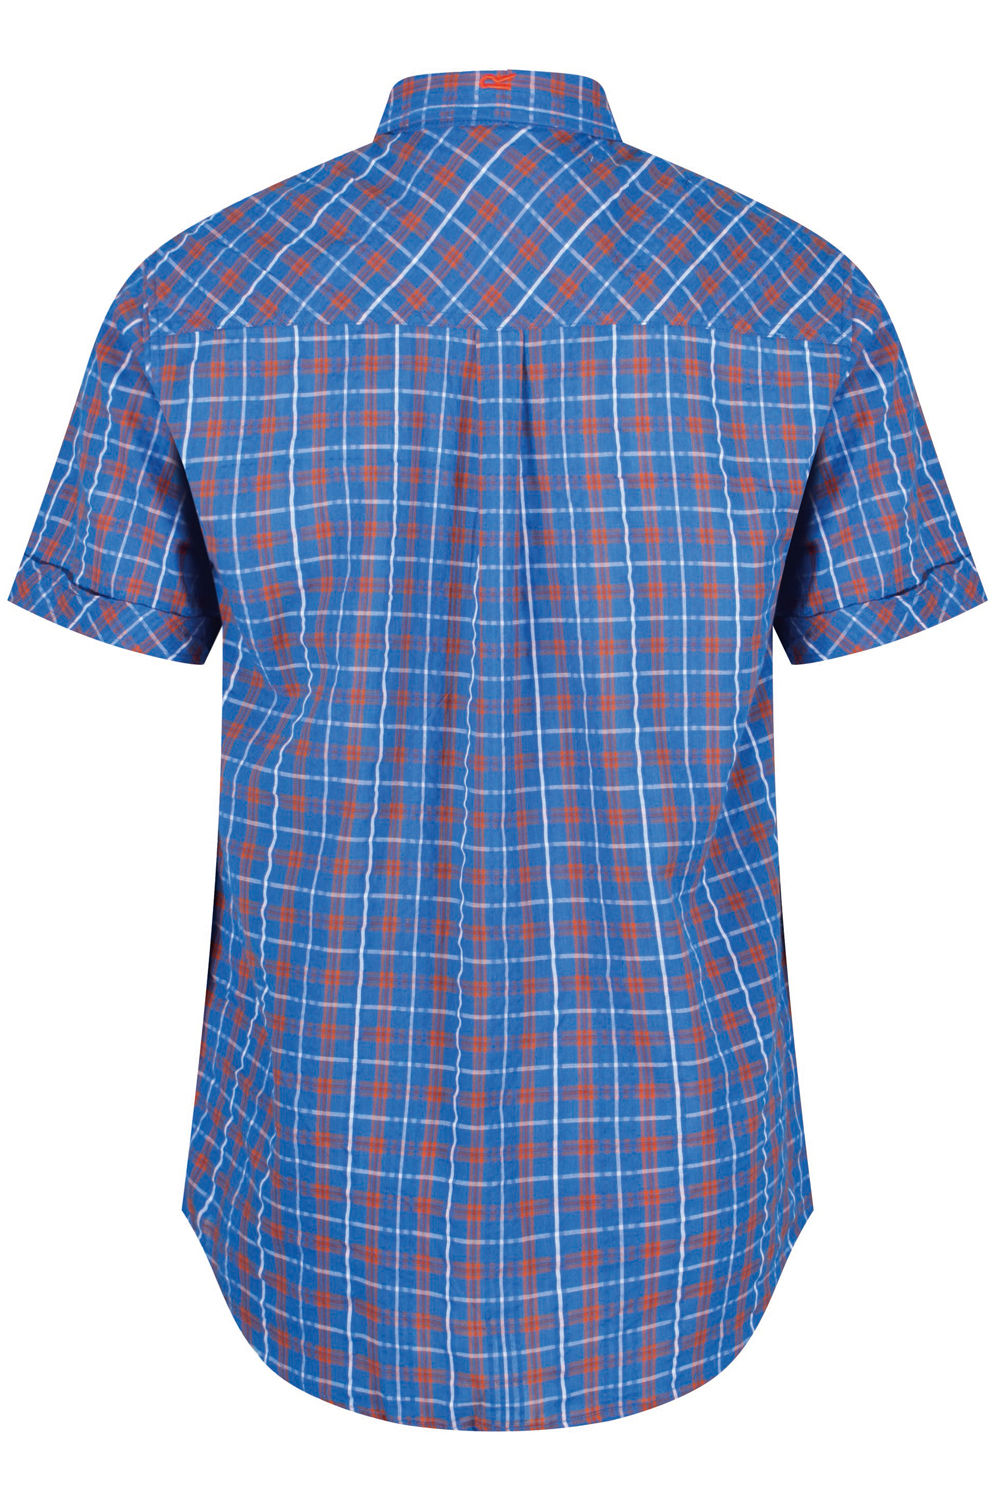 Regatta-Mens-Deakin-II-Coolweave-Cotton-Short-Sleeved-Summer-Check-Shirt-RRP-50 thumbnail 25